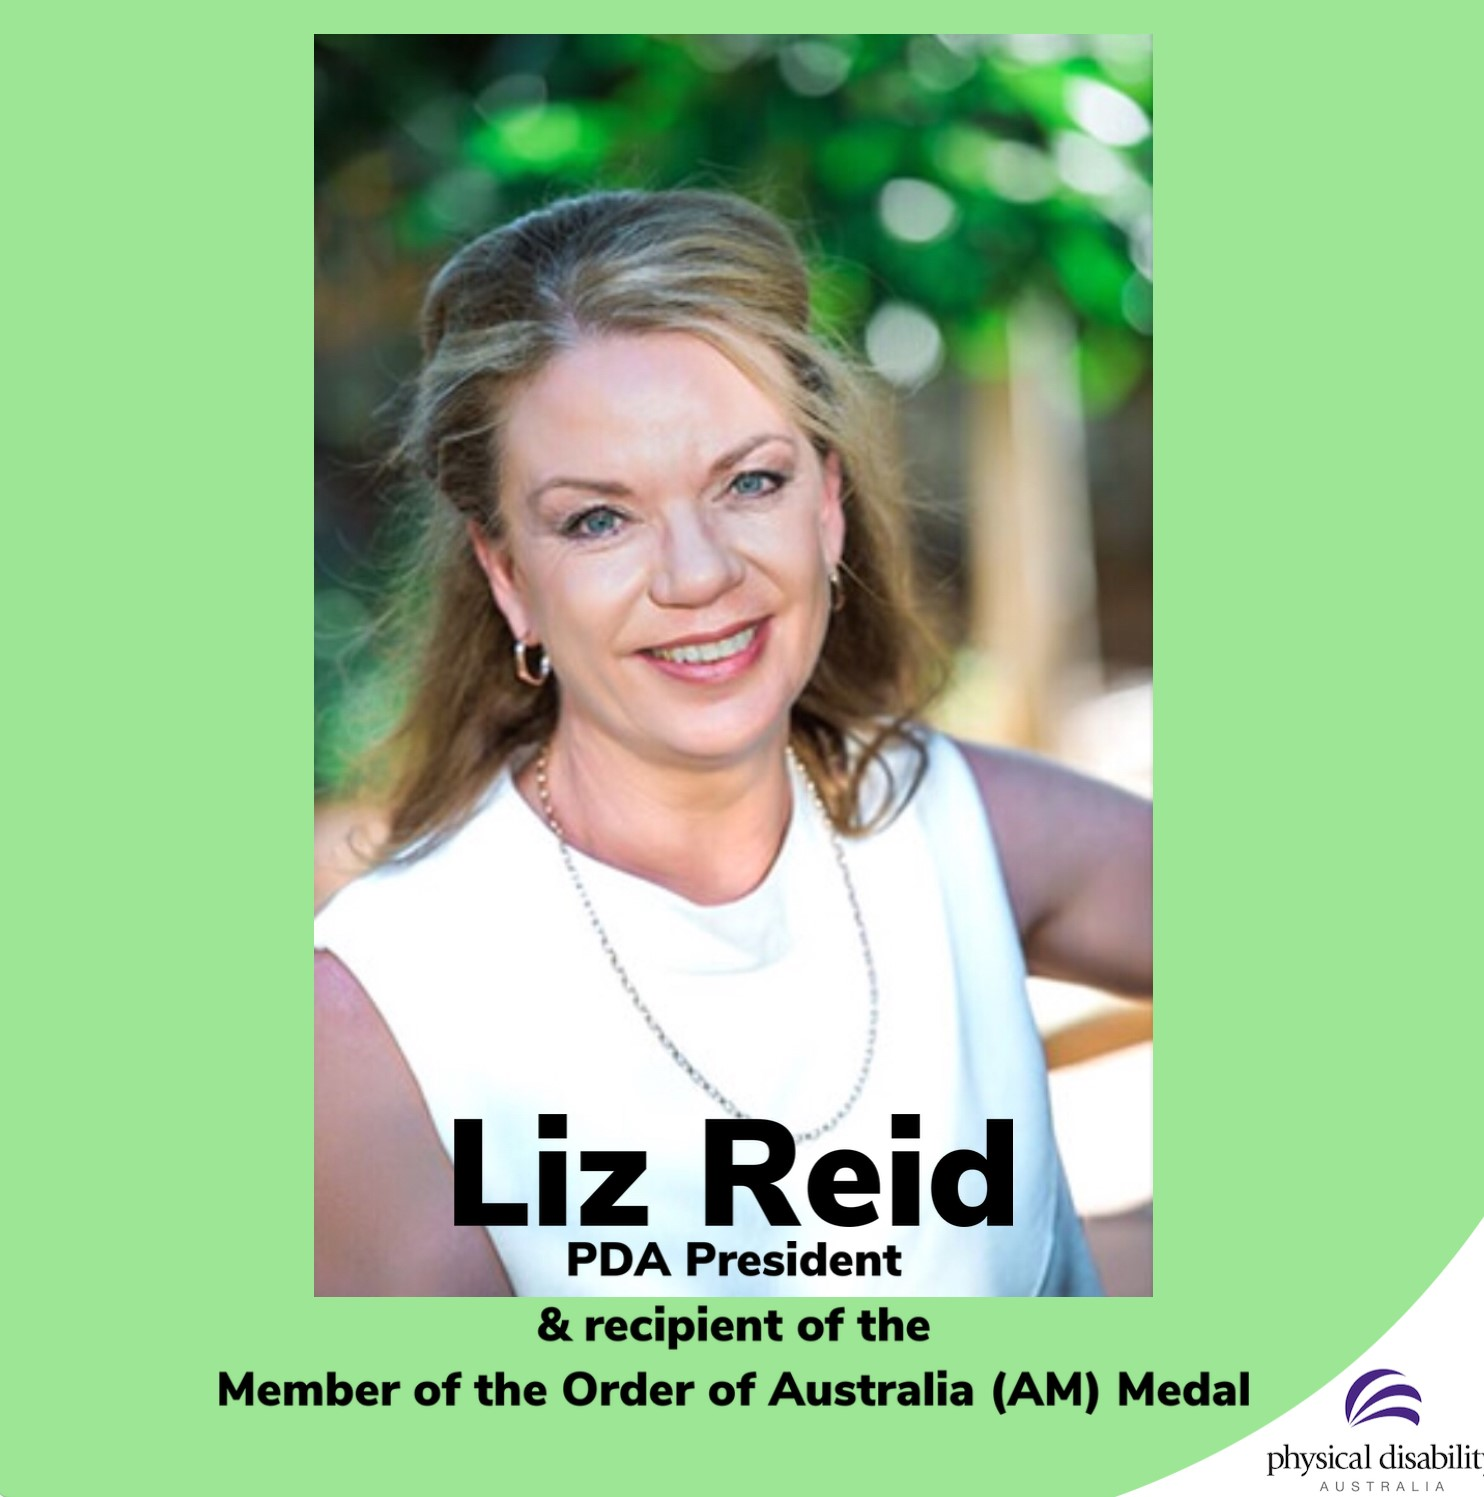 Liz Reid, PDA's President, has been awarded recognition with a Member of the Order of Australia  (AM)  Medal for her service to people with disability, to youth and to social inclusion.